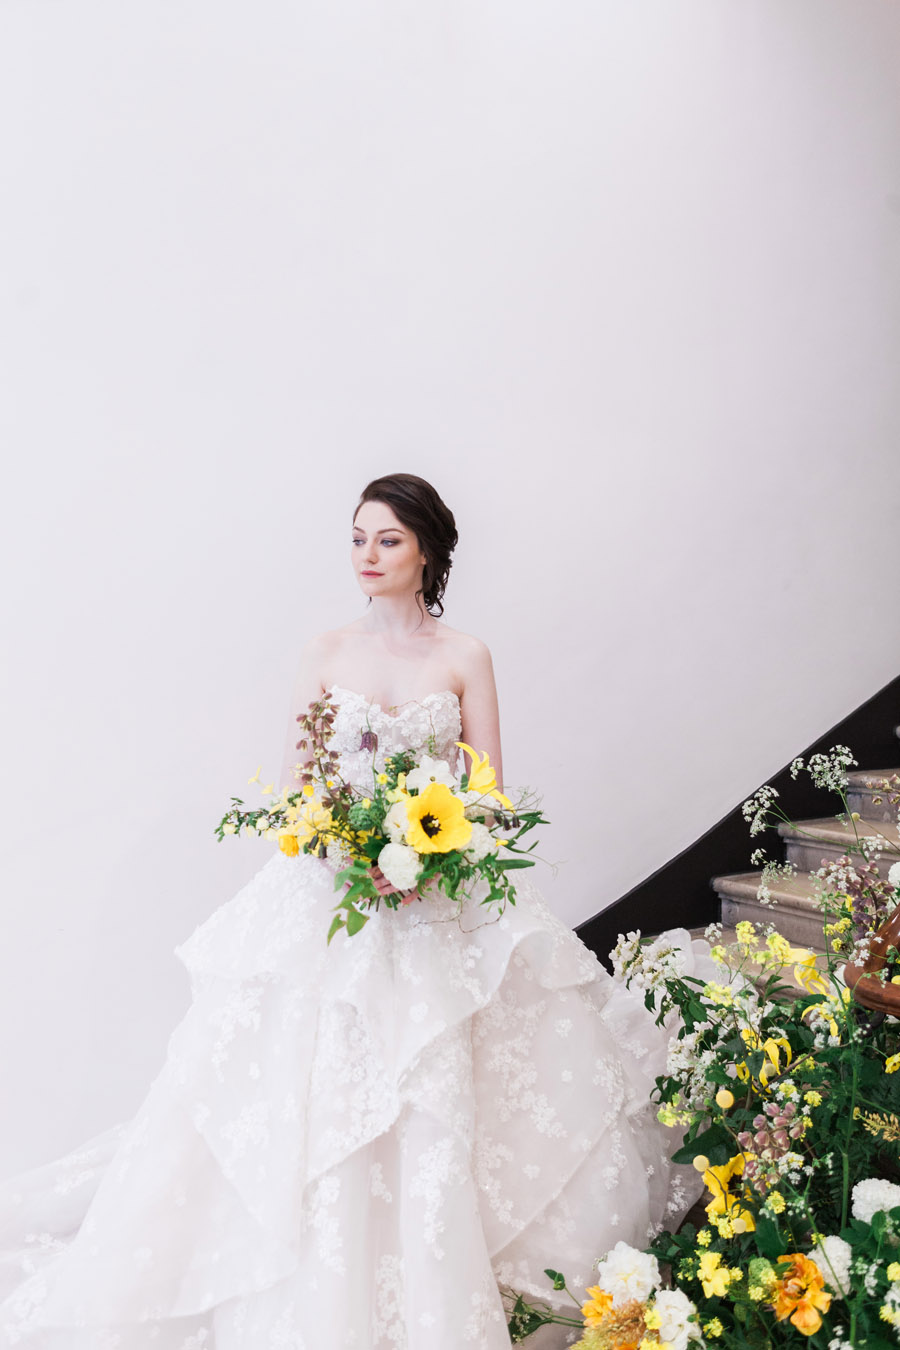 Glorious yellow Bloomologie blooms and styling by Chenai - photo credit Amanda Karen Photography (2)